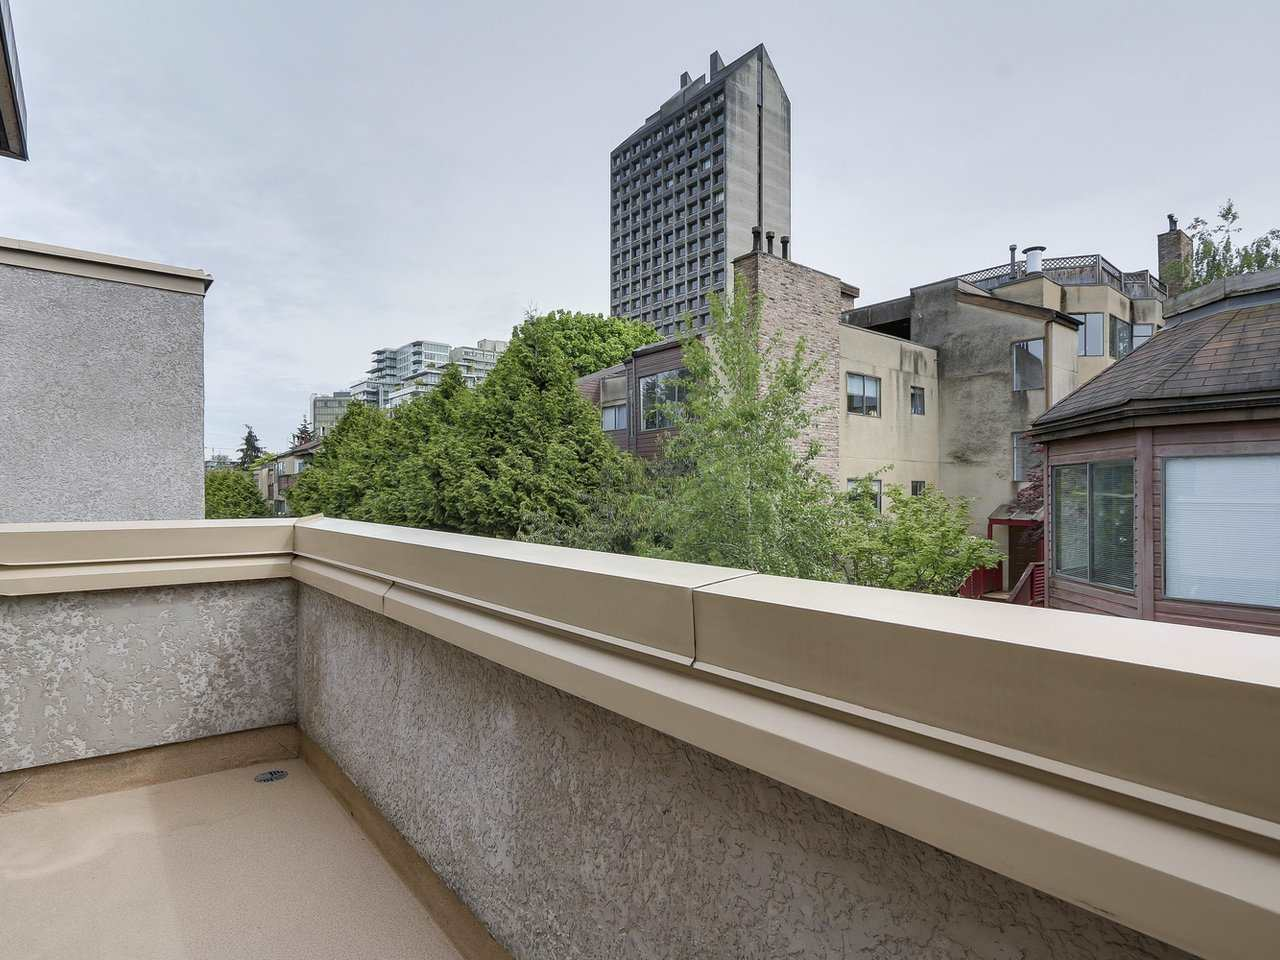 Photo 13: 58 870 W 7TH AVENUE in Vancouver: Fairview VW Townhouse for sale (Vancouver West)  : MLS® # R2169394